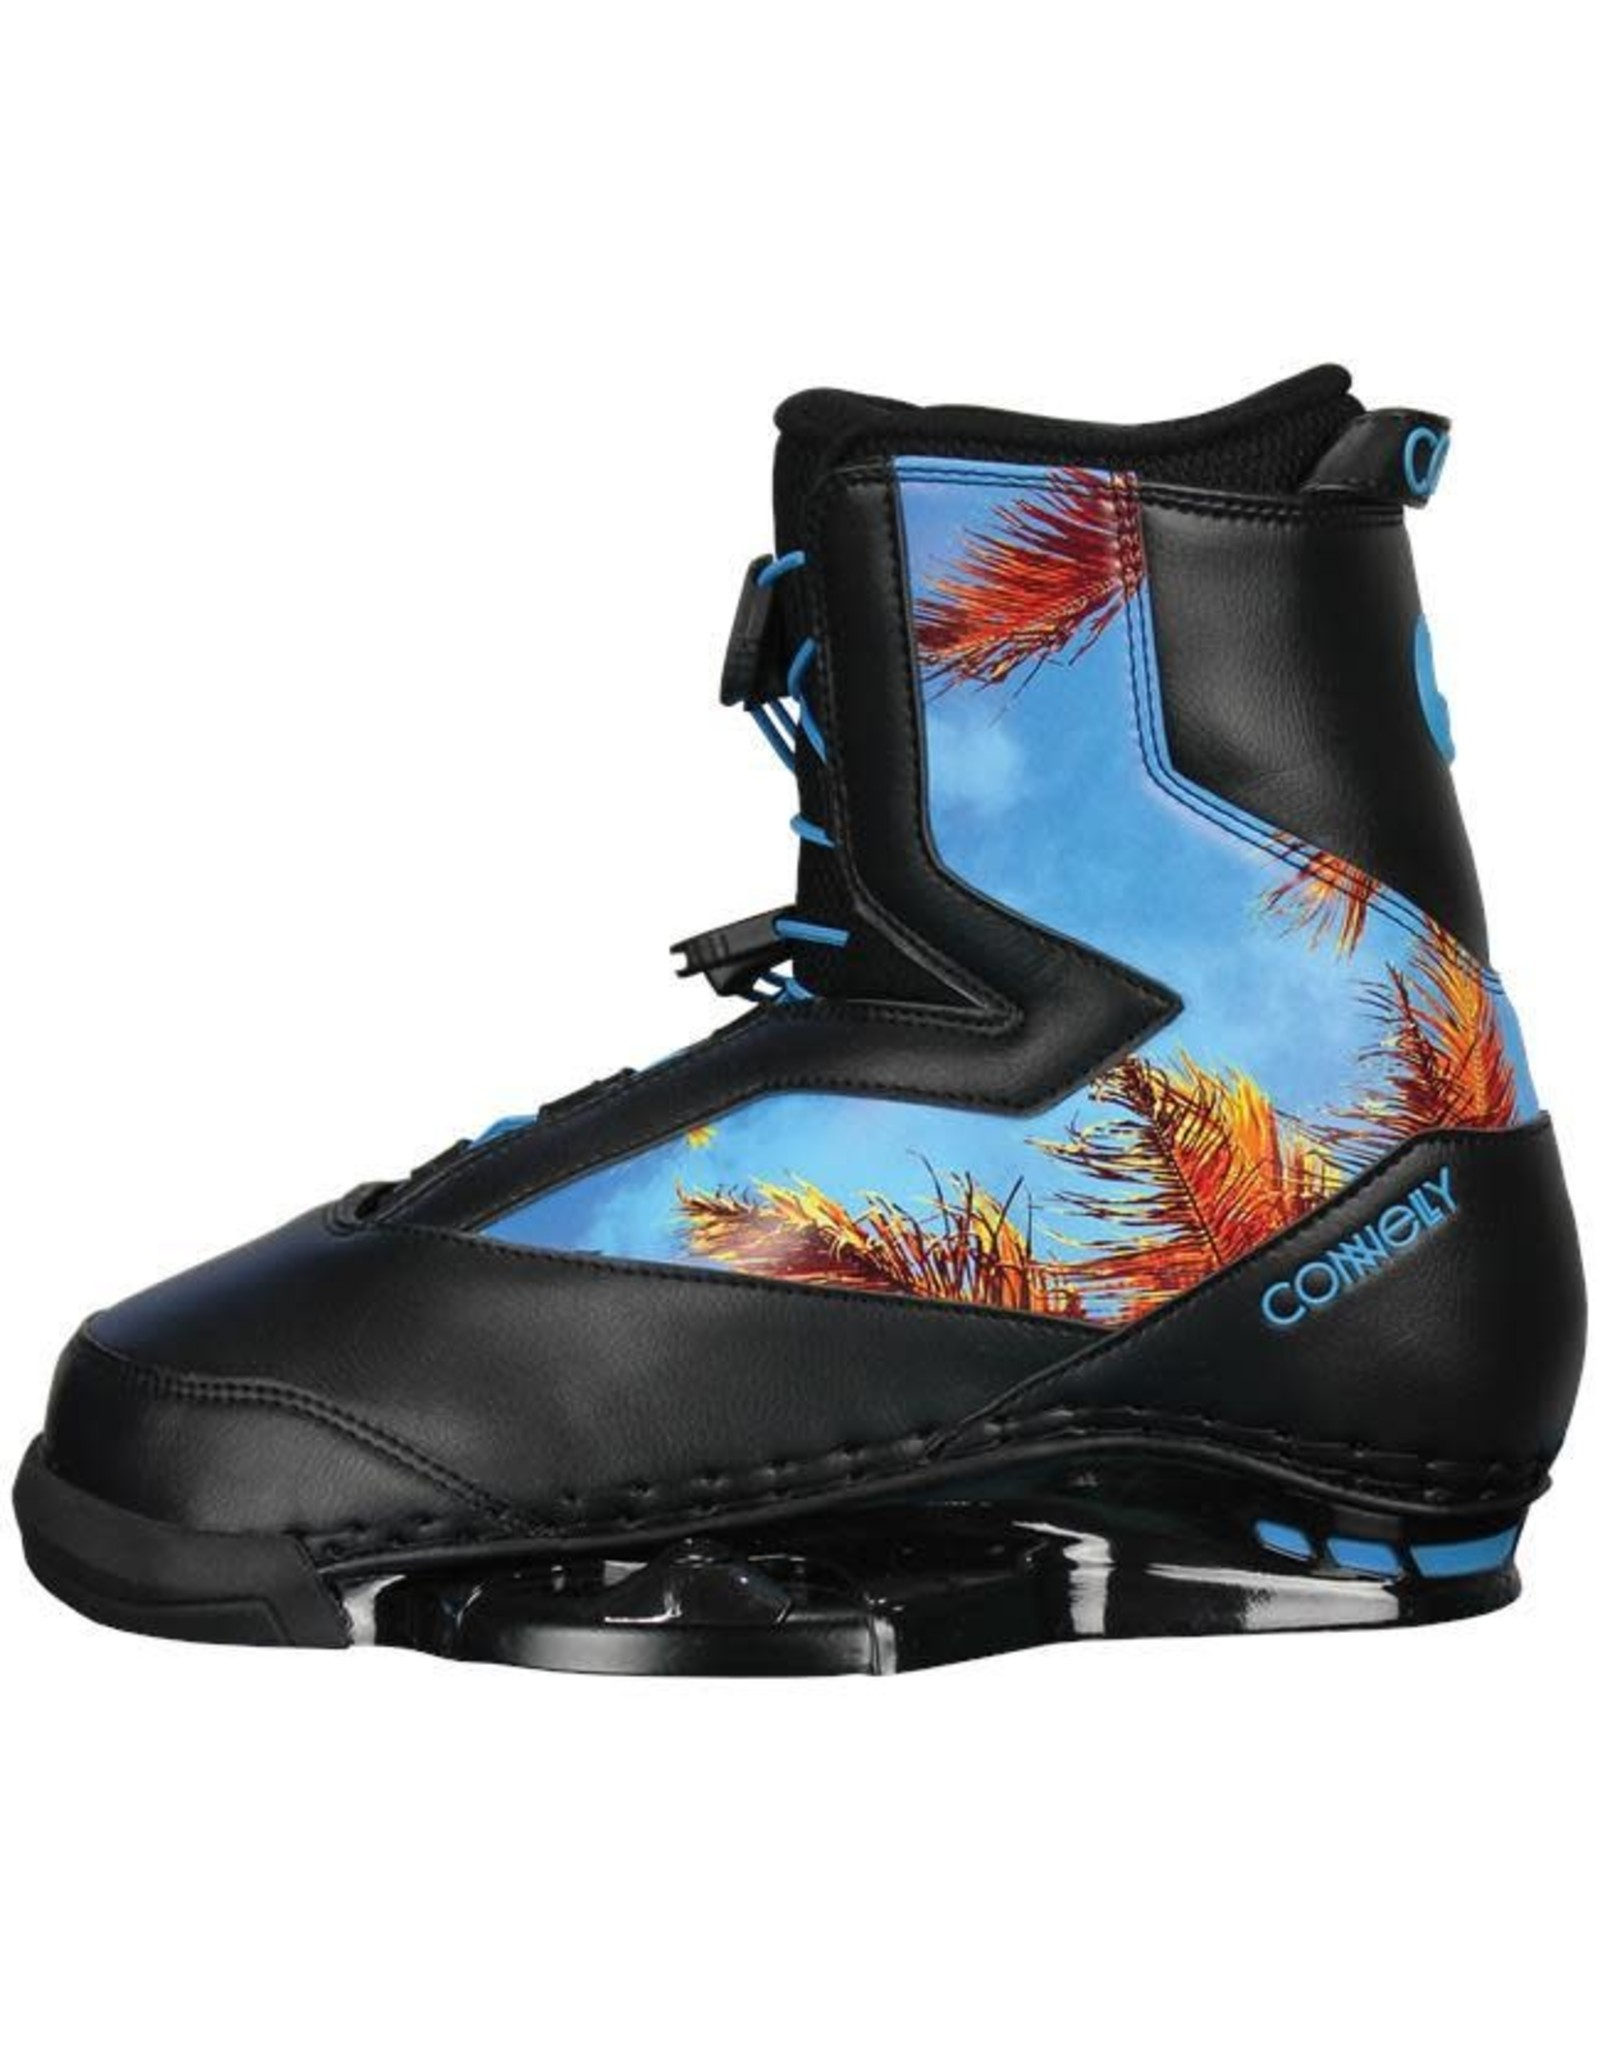 Connelly 2021 SL Wakeboard Boot